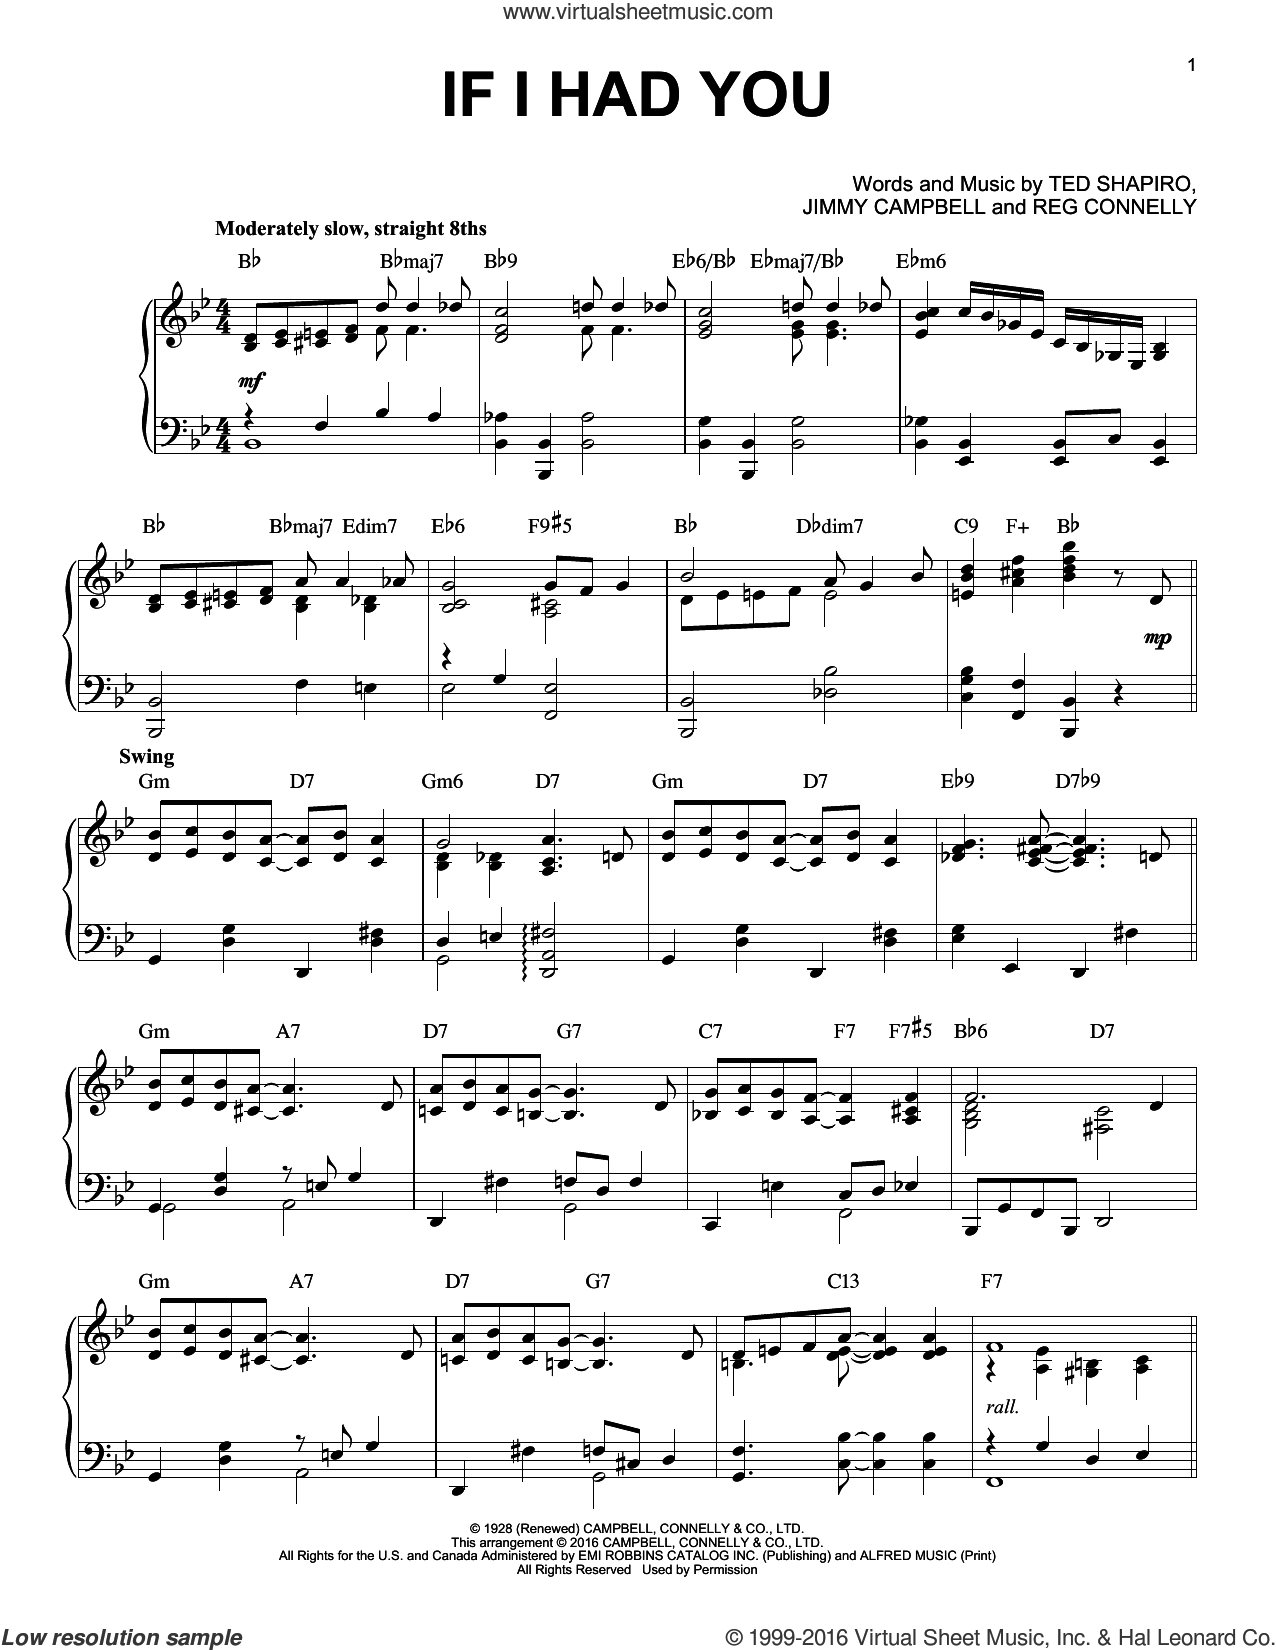 If I Had You sheet music for piano solo by Frank Sinatra, Jimmy Campbell, Reg Connelly and Ted Shapiro, intermediate skill level